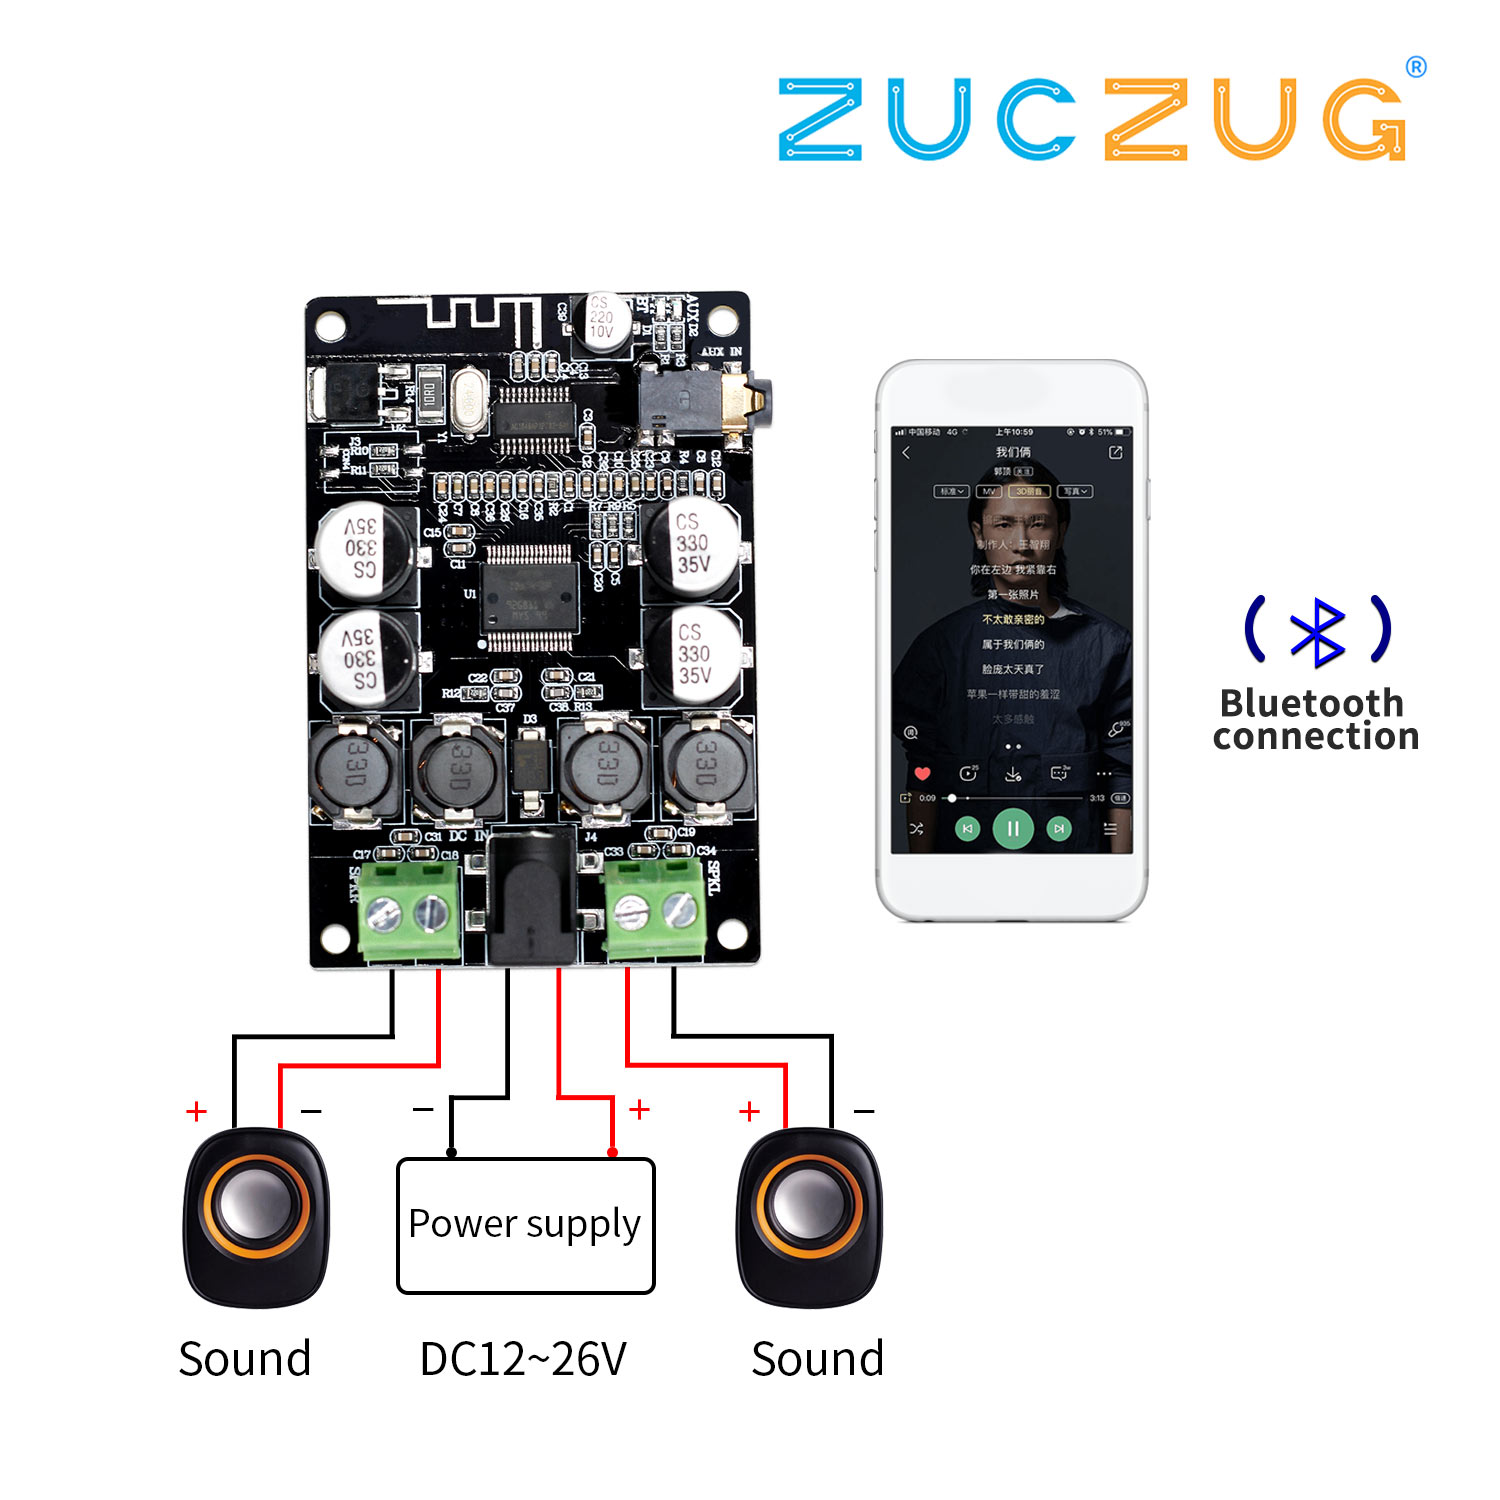 VHM-307 TDA7492P Bluetooth Receiver Amplifier Audio Board 25W*2 Speakers Modified Music Mini Amplifiers Diy Dual channelVHM-307 TDA7492P Bluetooth Receiver Amplifier Audio Board 25W*2 Speakers Modified Music Mini Amplifiers Diy Dual channel